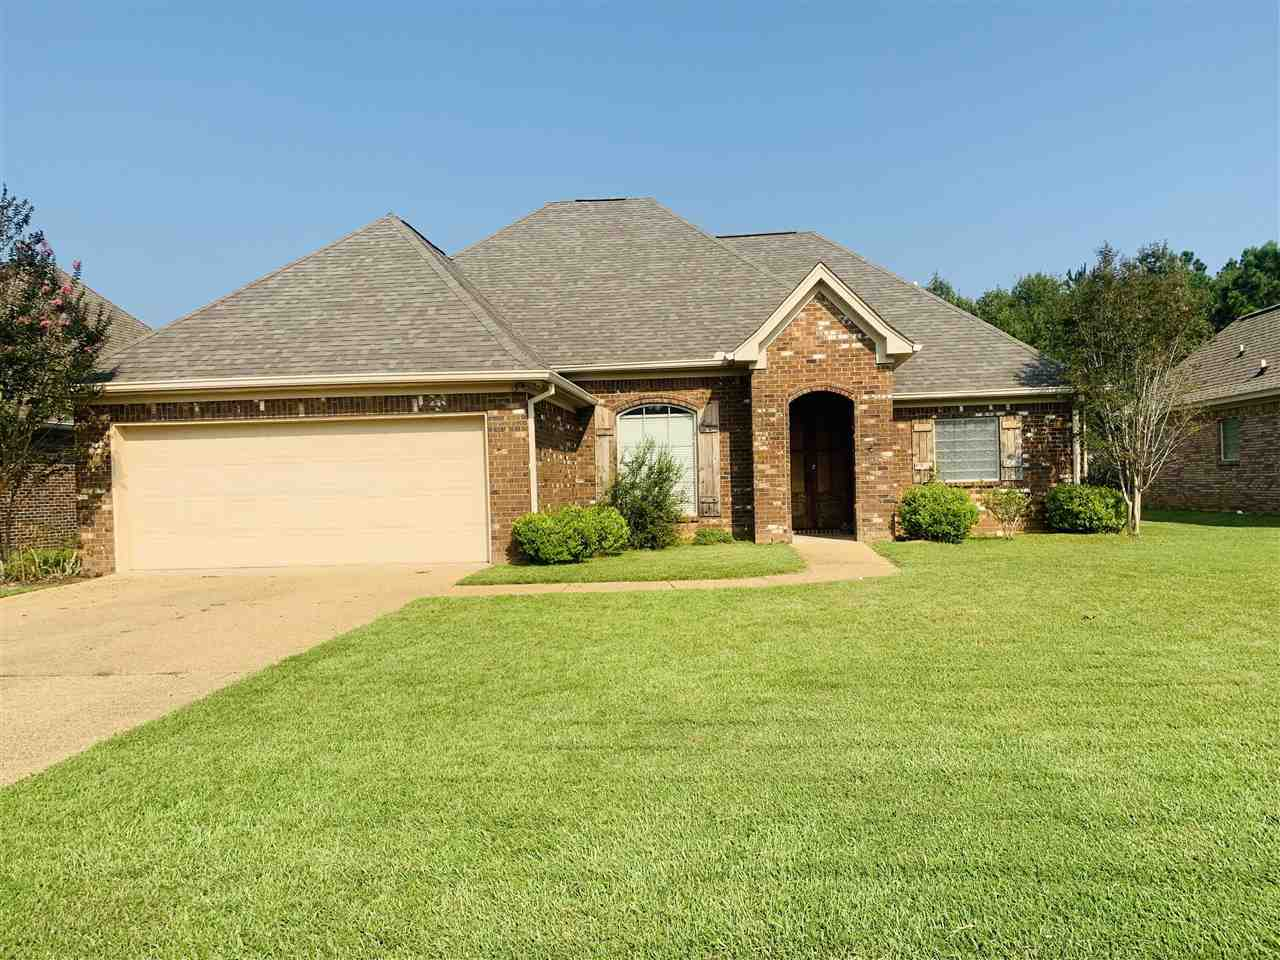 Move-In-Ready home awaits you in the City of Florence, Rankin County, MS. This lovely home is located in the highly sought after, Copper Ridge subdivision. The home features semi-open concept with 3/2 split floor-plan. The large owner's suite offers great privacy,  tall bay windows, double walk-in closets, double vanities, separated shower, jetted bath tub. Open formal dining room with tall windows flows to spacious living-room with a fire place, large break-fast room with bay windows. The spacious galley style kitchen offers handsome Viking appliances, gorgeous granite counter top, xtra cabinet space, eat & go breakfast nook. The interior is coated with fresh New paint. There is NO carpet: 3 bedrooms have New laminated wood floor and the rest is tiled. The spacious, covered back porch over looks a peaceful green area, and the leveled back yard is embraced by wooden fence for your privacy. The roof is New, HAVC unit is only 2 yr young, and Tankless water heater is only 1 yr young. Hurry come look at this Lovely home Today!